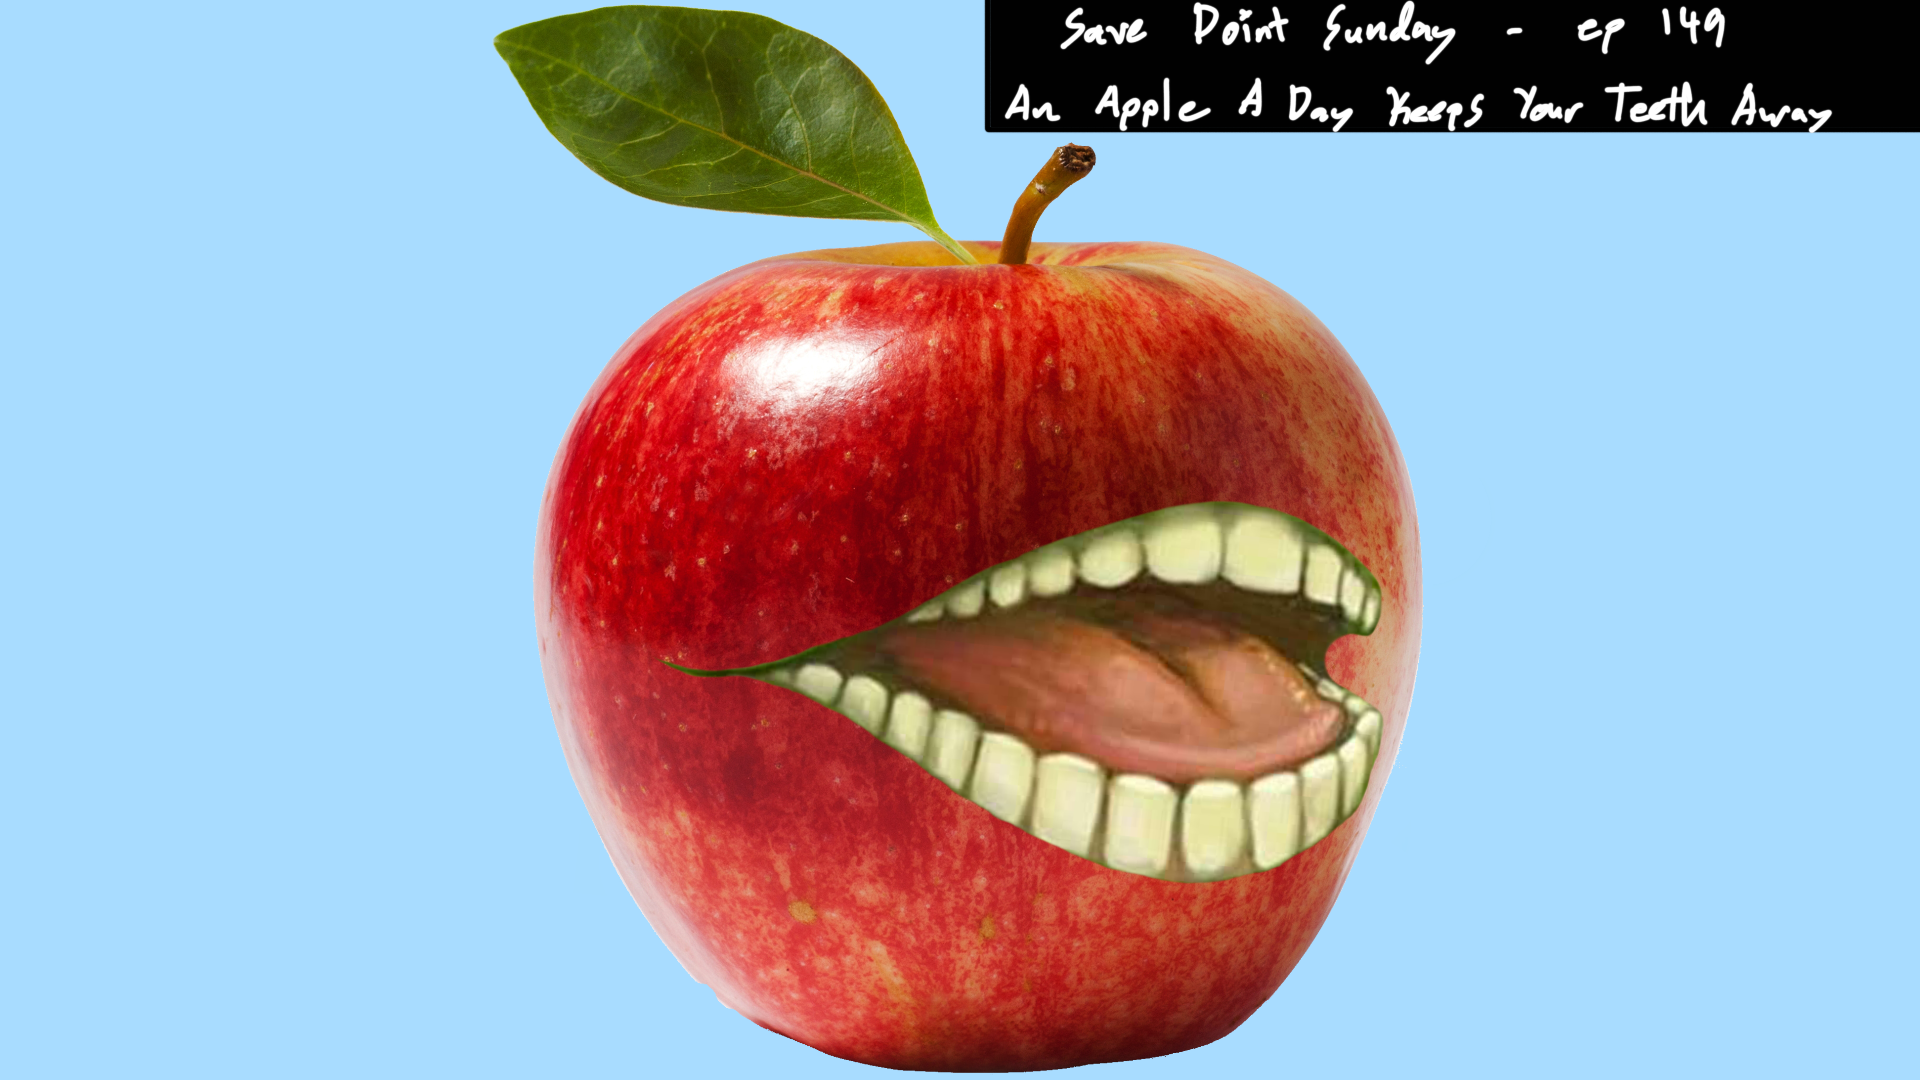 Episode 149: An Apple A Day Keeps Your Teeth Away